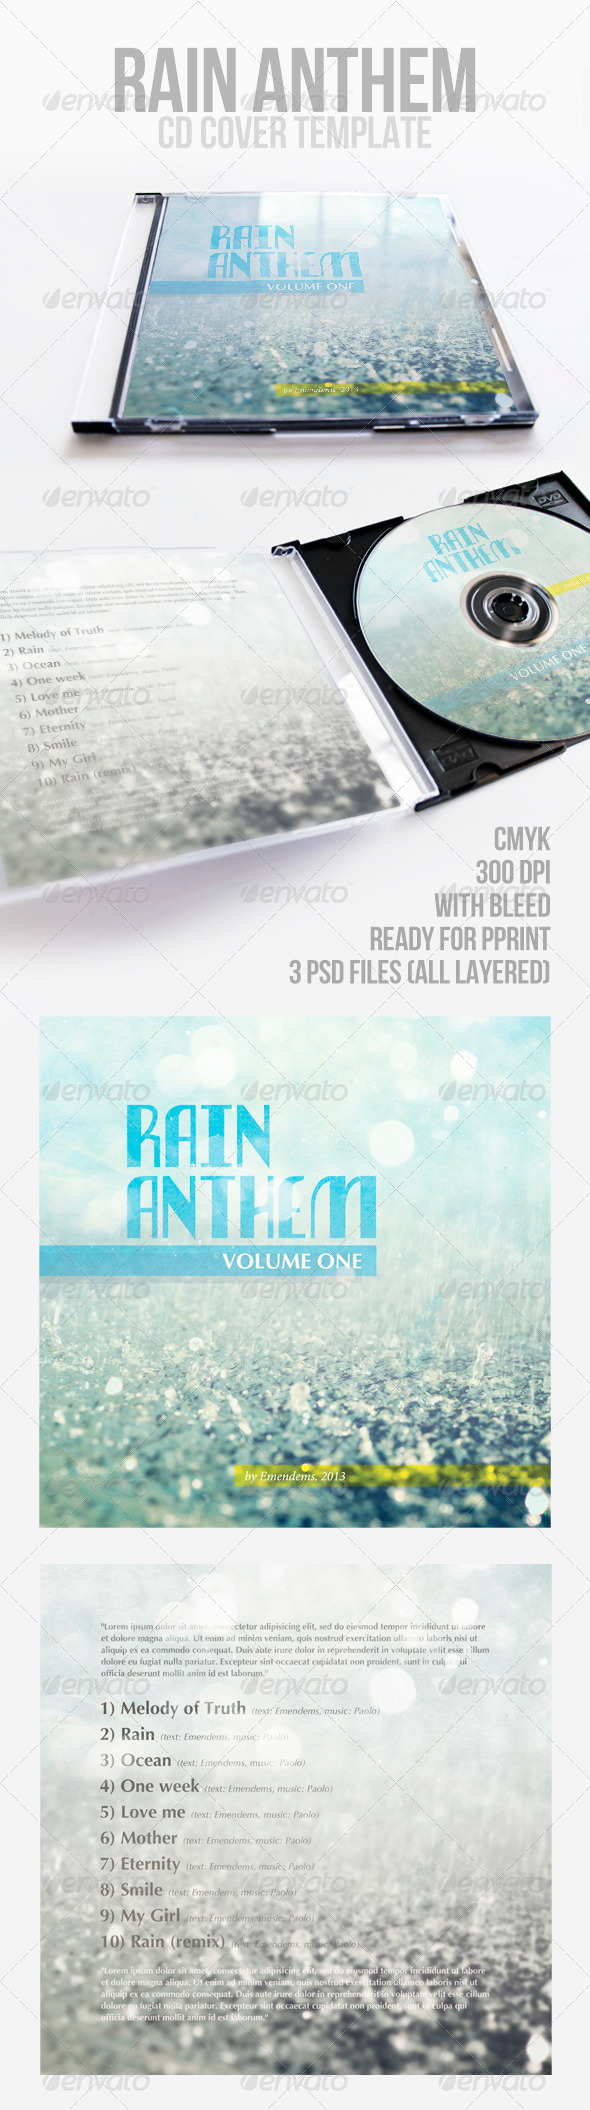 GraphicRiver Rain Anthem CD Cover Template 4325803